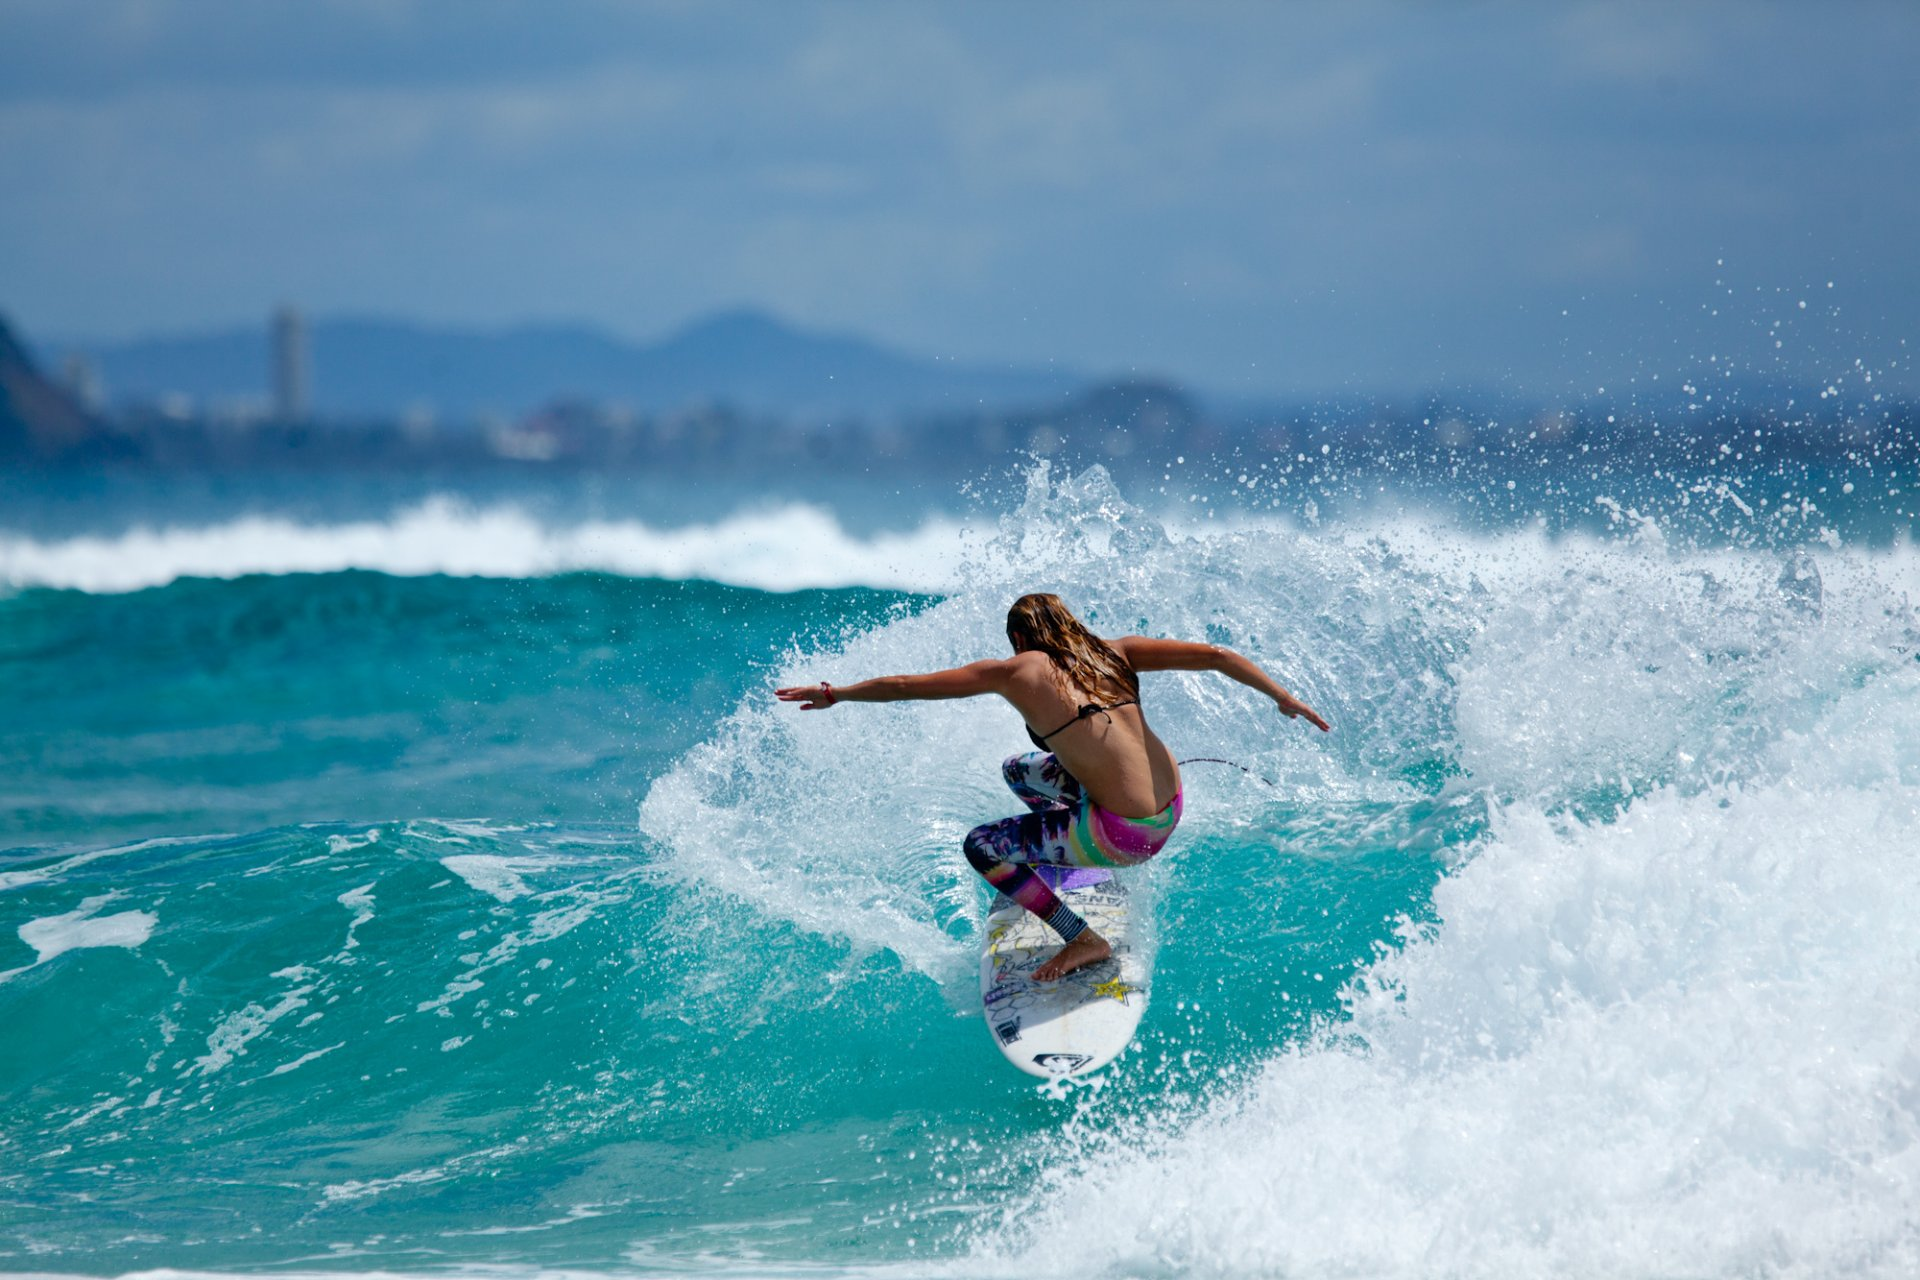 an analysis of the phrase third times a charm in surfing sport Review and commentary mrclements does not comprehend that there is a difference between the modern sport and the martial art from which it third time's a charm.